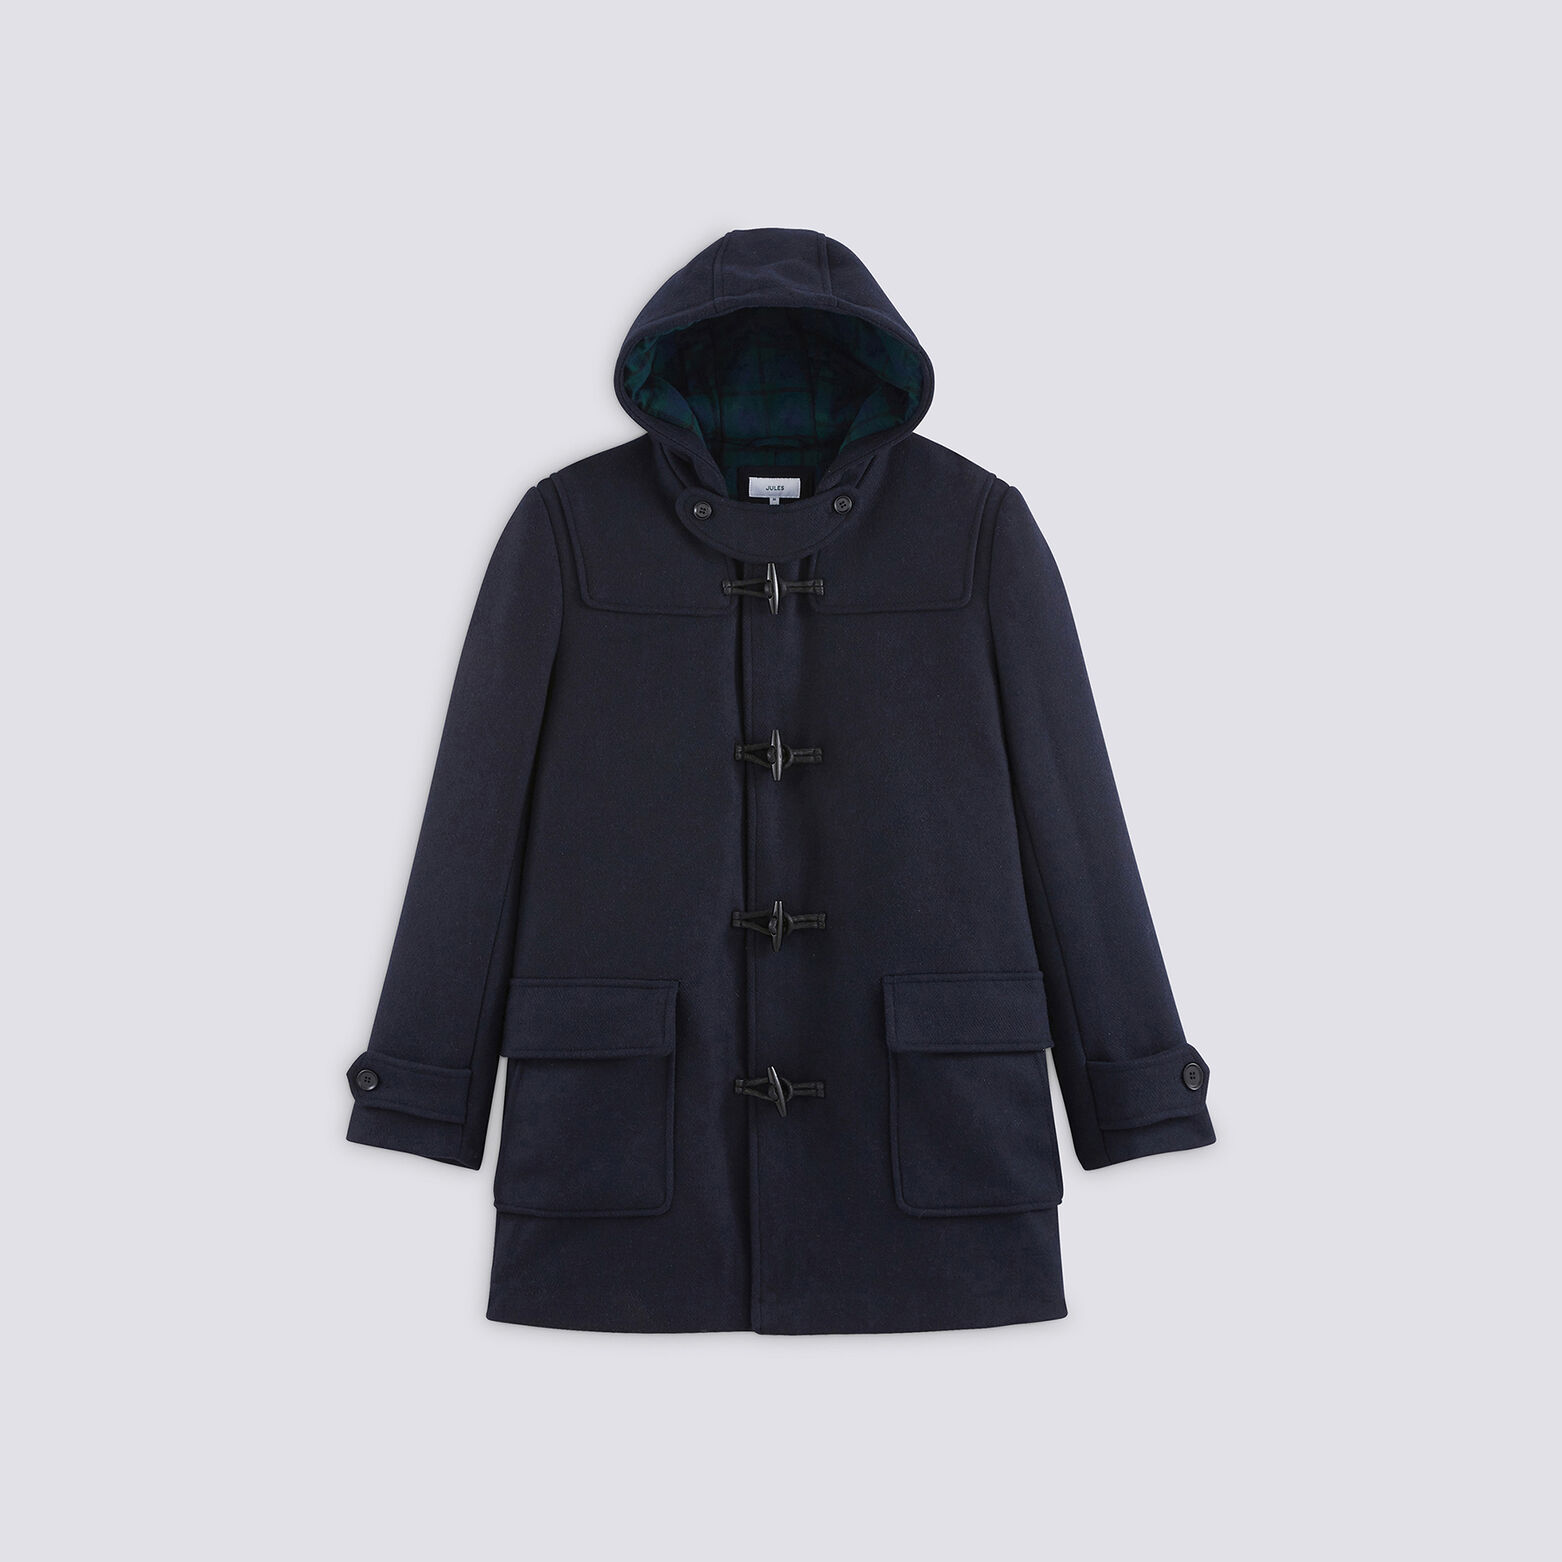 Ensemble manteau bonnet jean